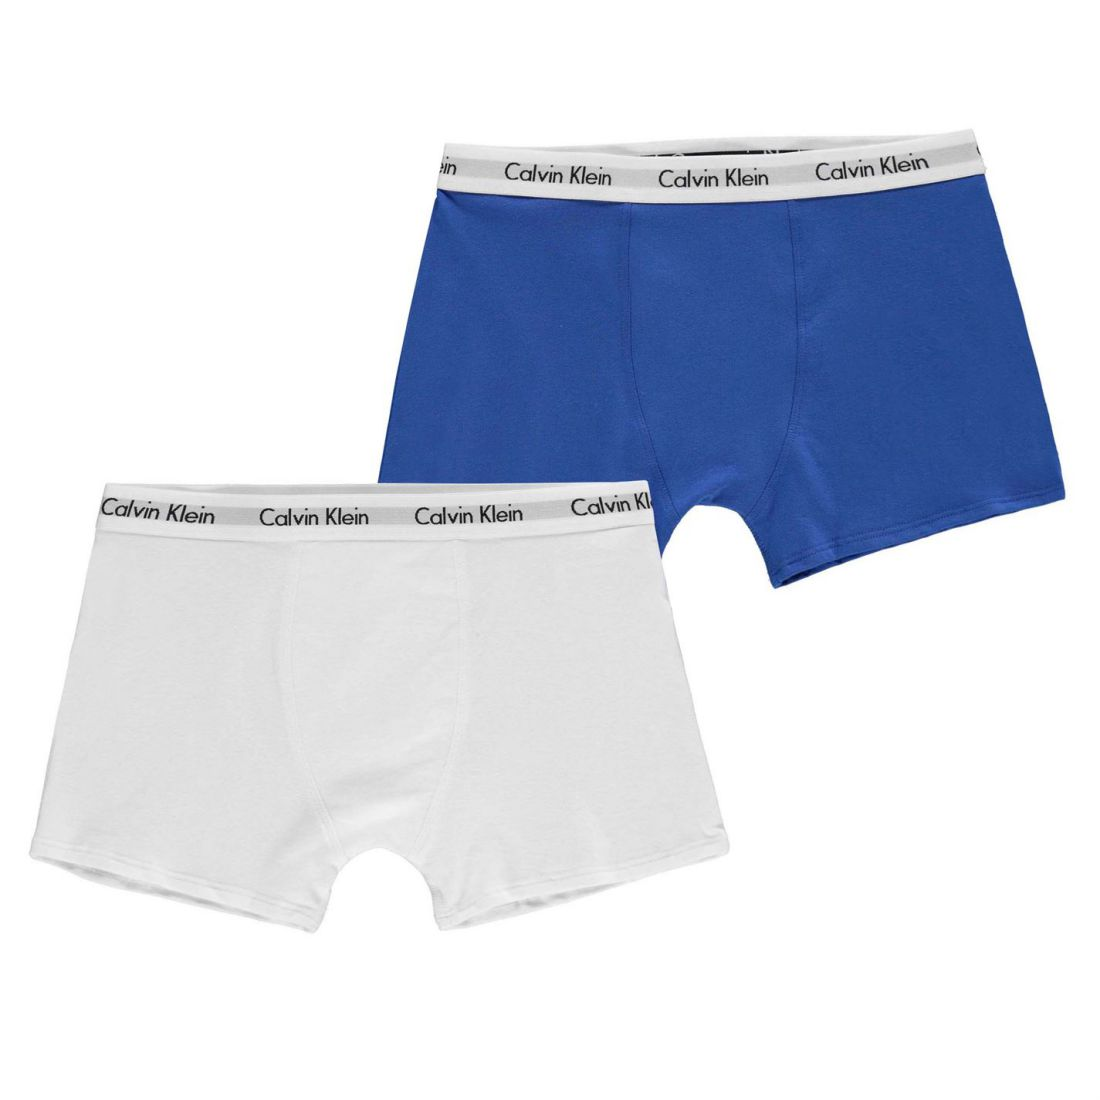 2ba47d4e26 Calvin klein pack trunks junior boys underwear kids ebay jpg 1425x1425 Calvin  klein underwear for boys